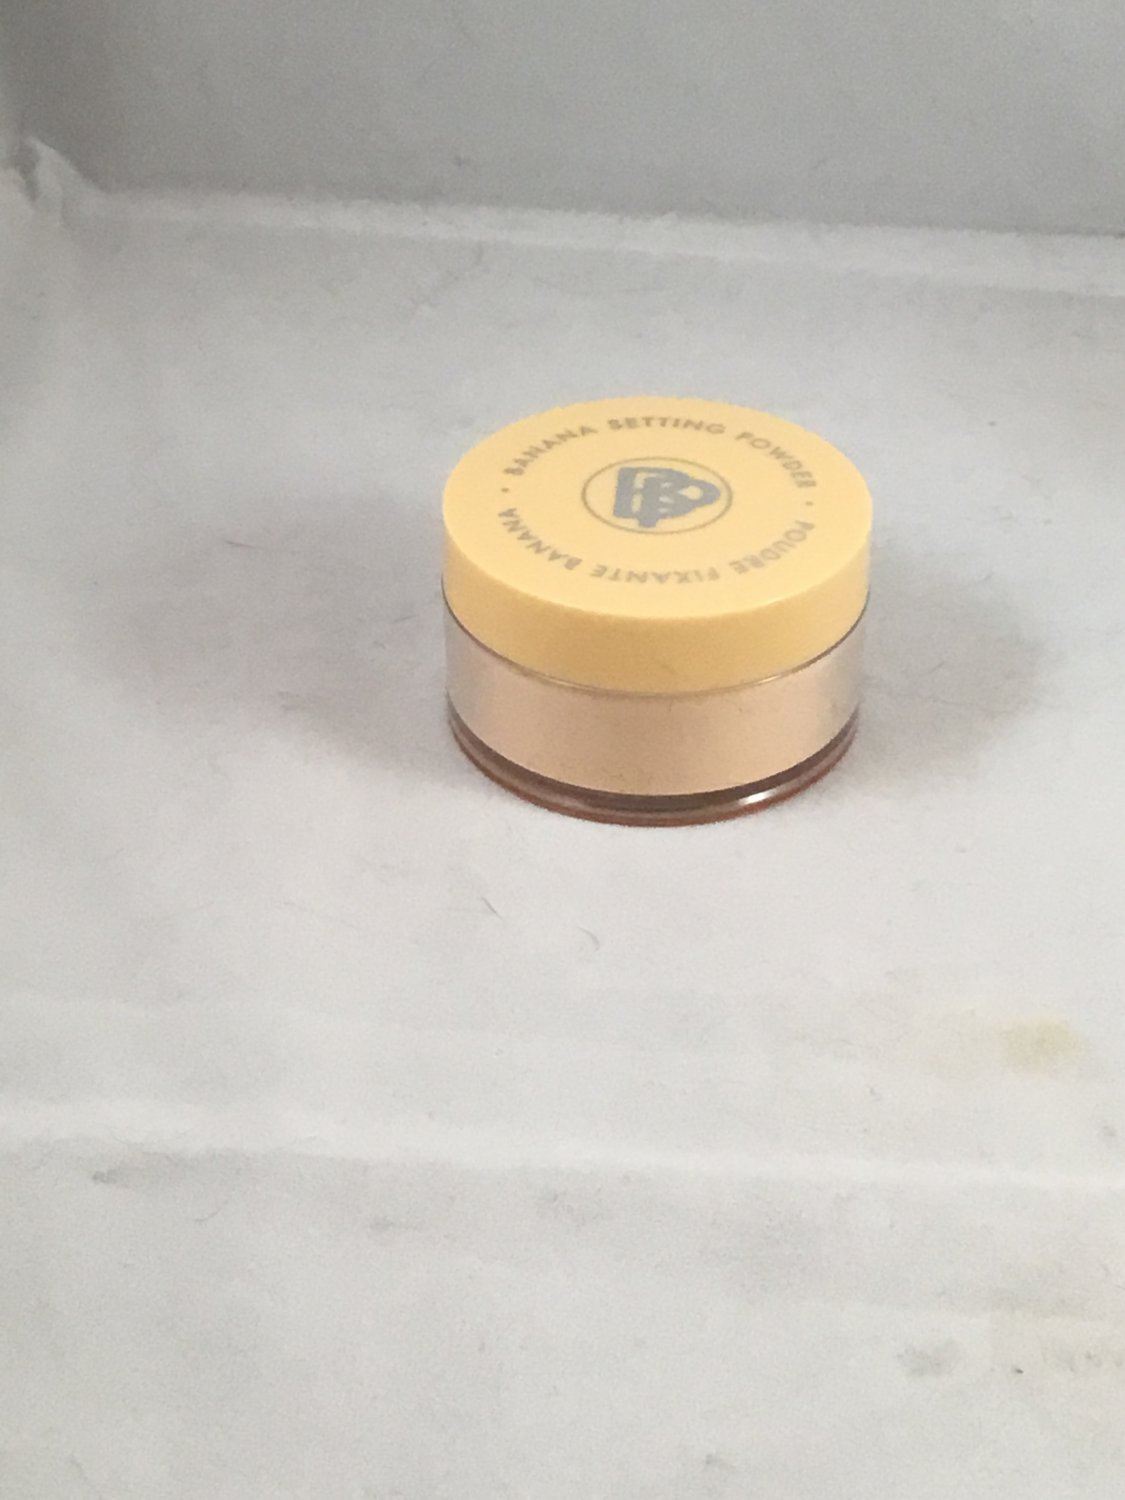 Bellapierre Cosmetics Banana Setting Powder Loose